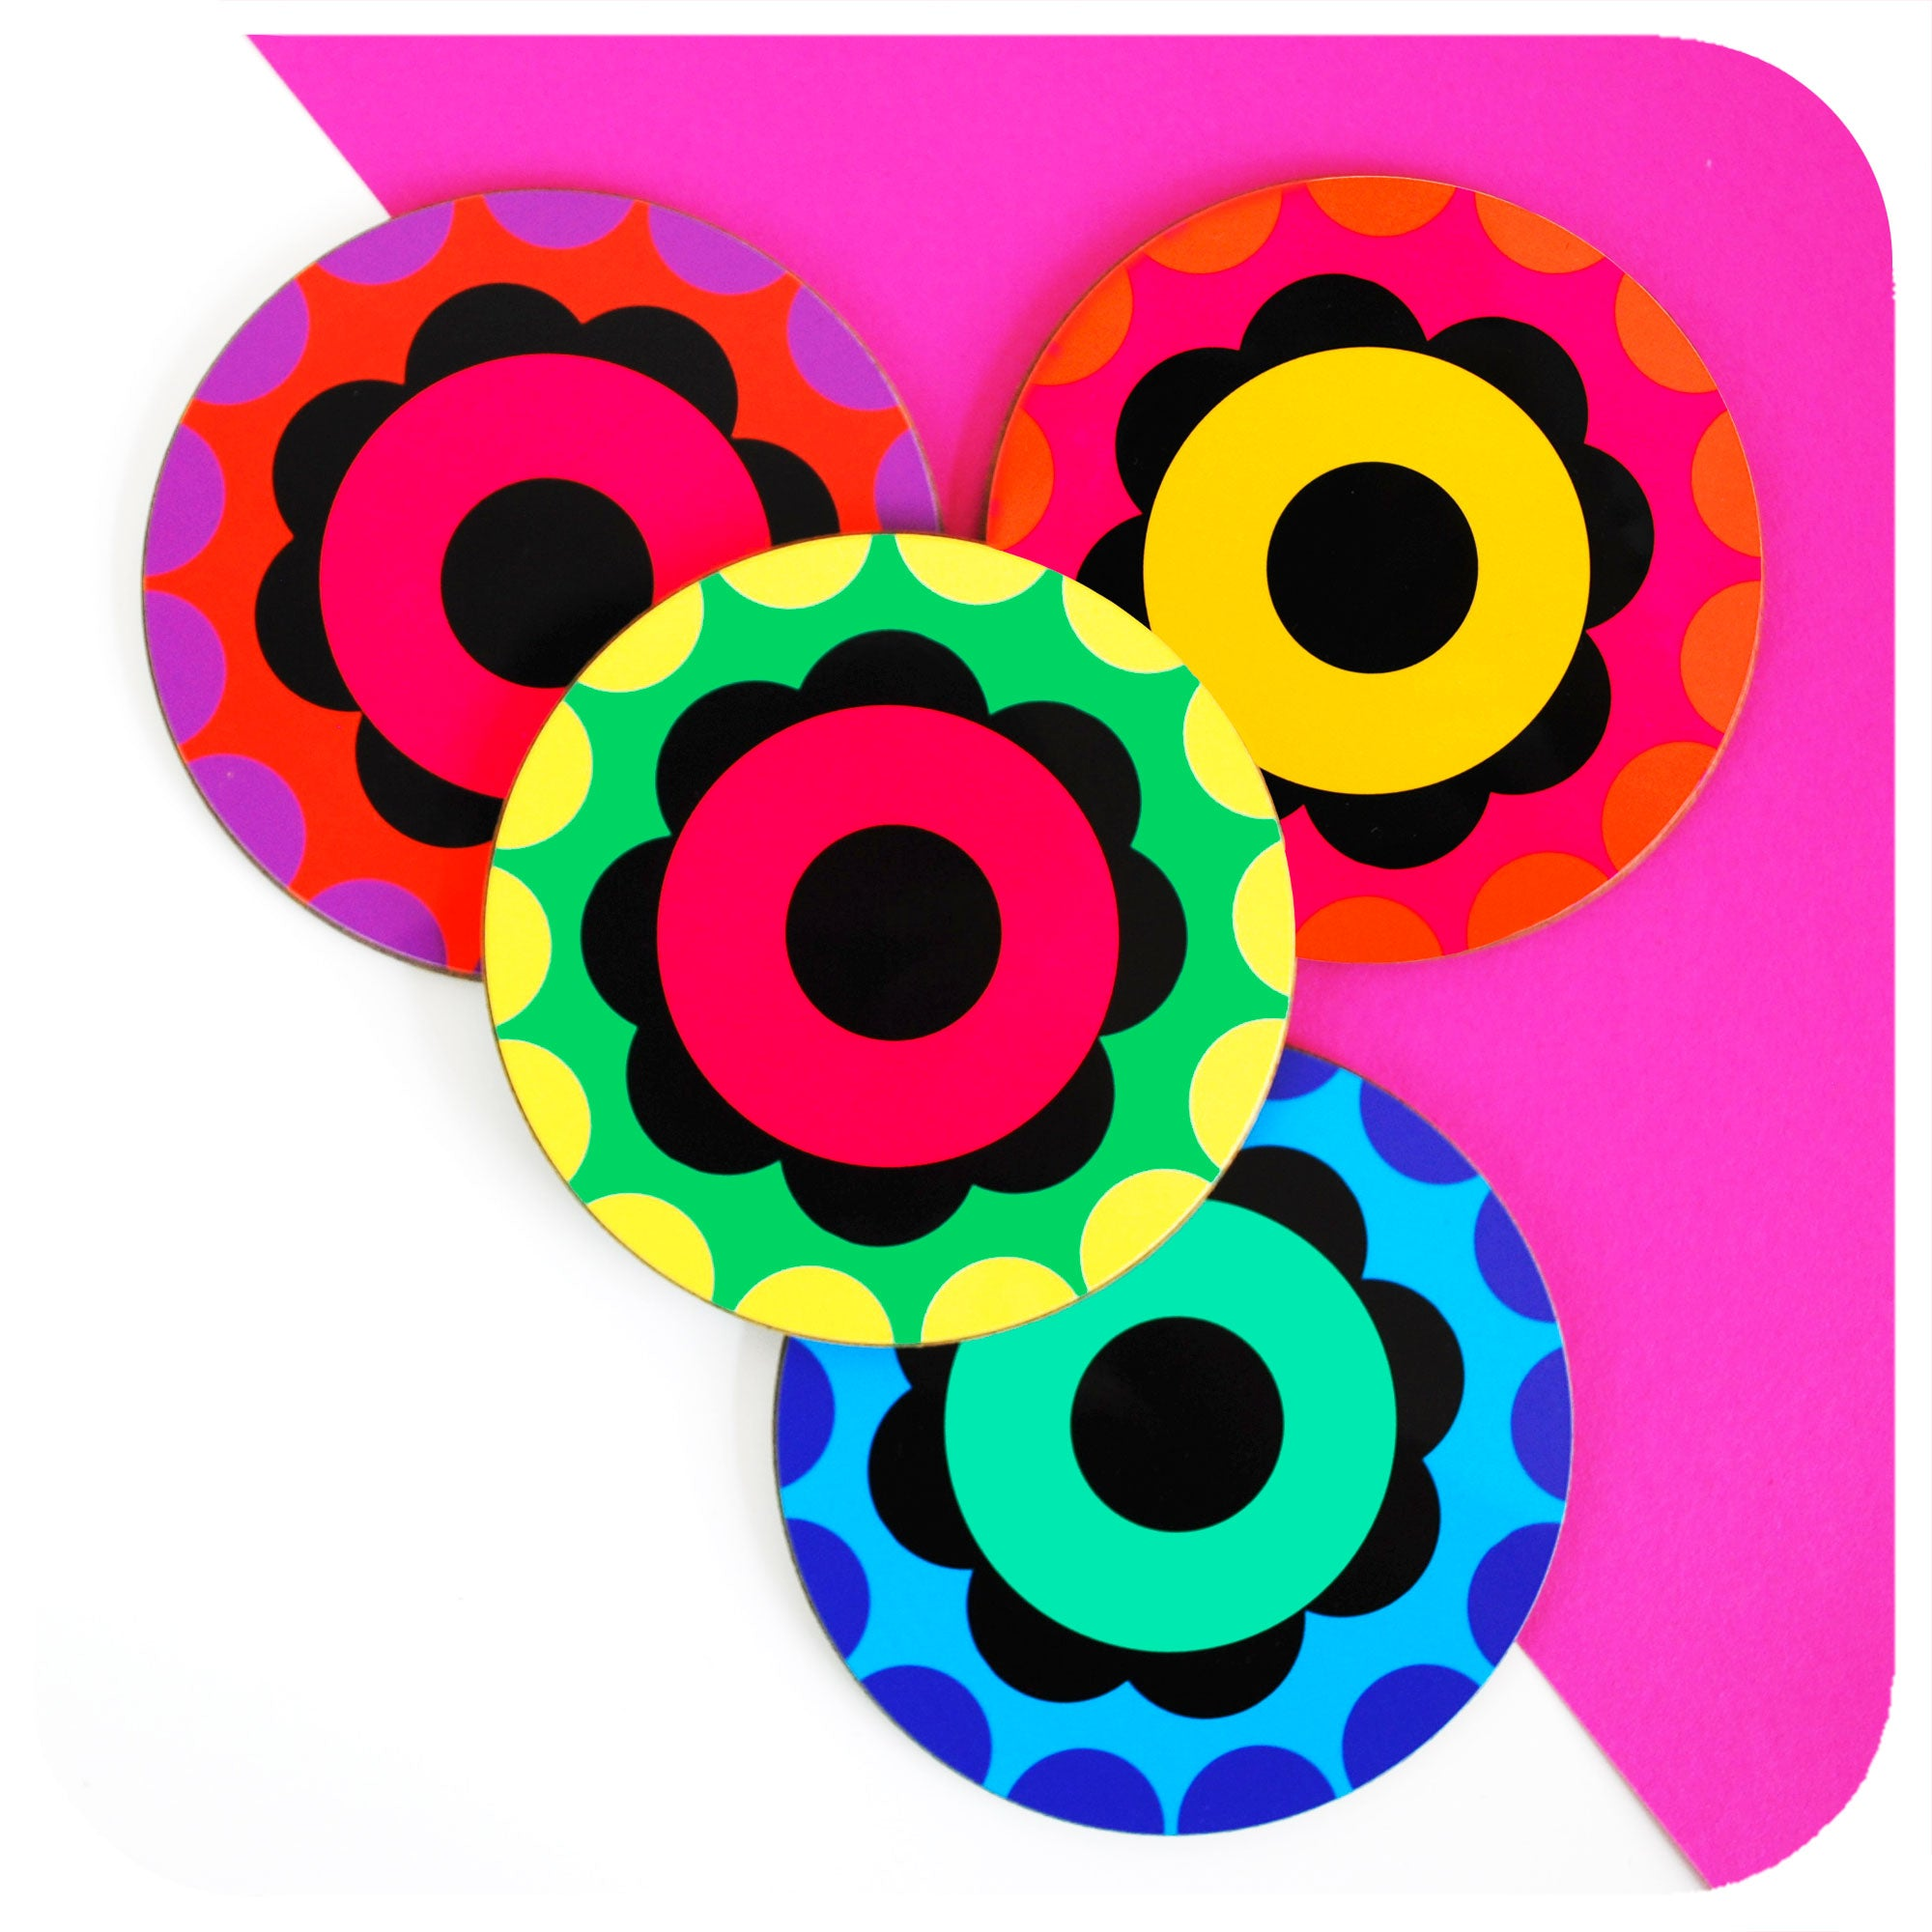 Four 60s Style Flower Power round coasters | The Inkabilly Emporium